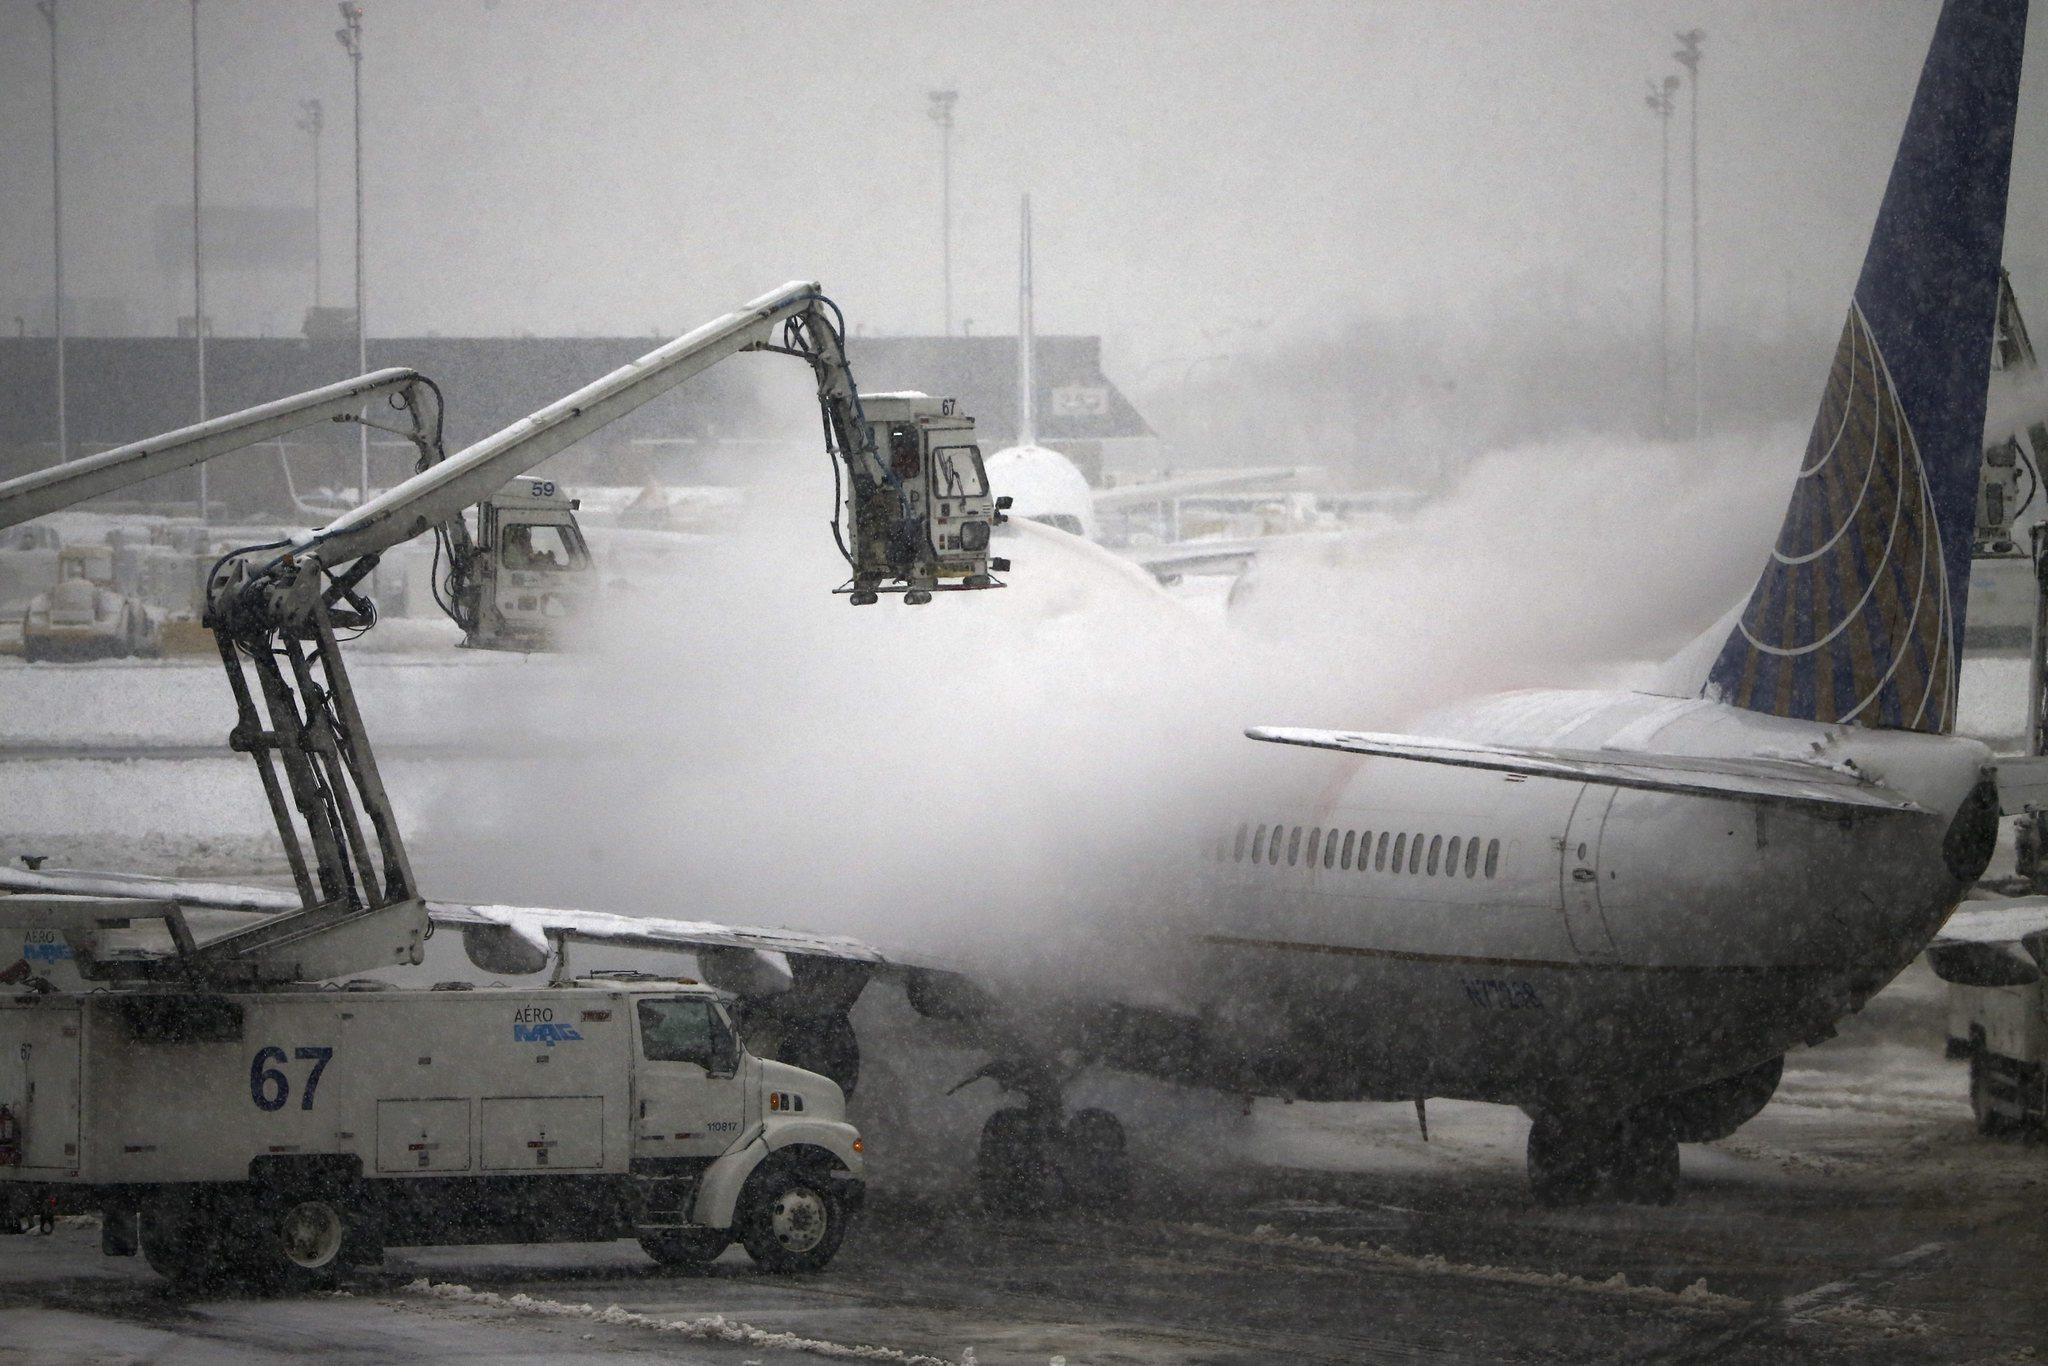 A United Airlines jet is de-iced before taking off from Newark Liberty International Airport in Newark, New Jersey.